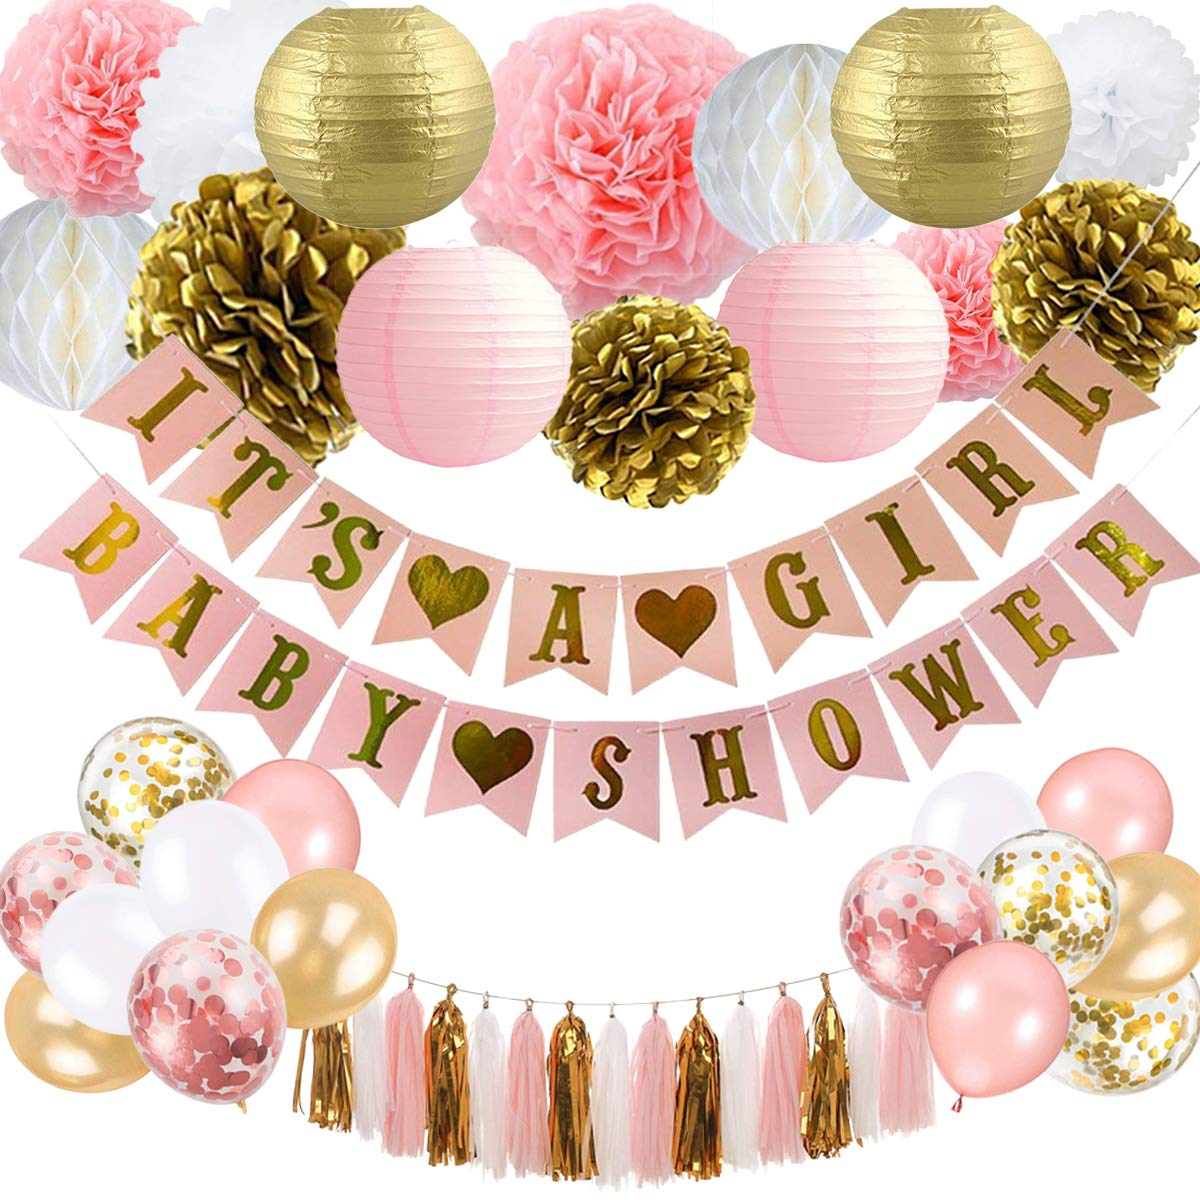 Baby Shower Decorations for Girl - Pink and Gold Baby Shower Decoration It's A girl & Baby Shower Banner with Paper Lantern Pompoms Flowers Honeycomb Ball Balloons Foil Tassel by BRT